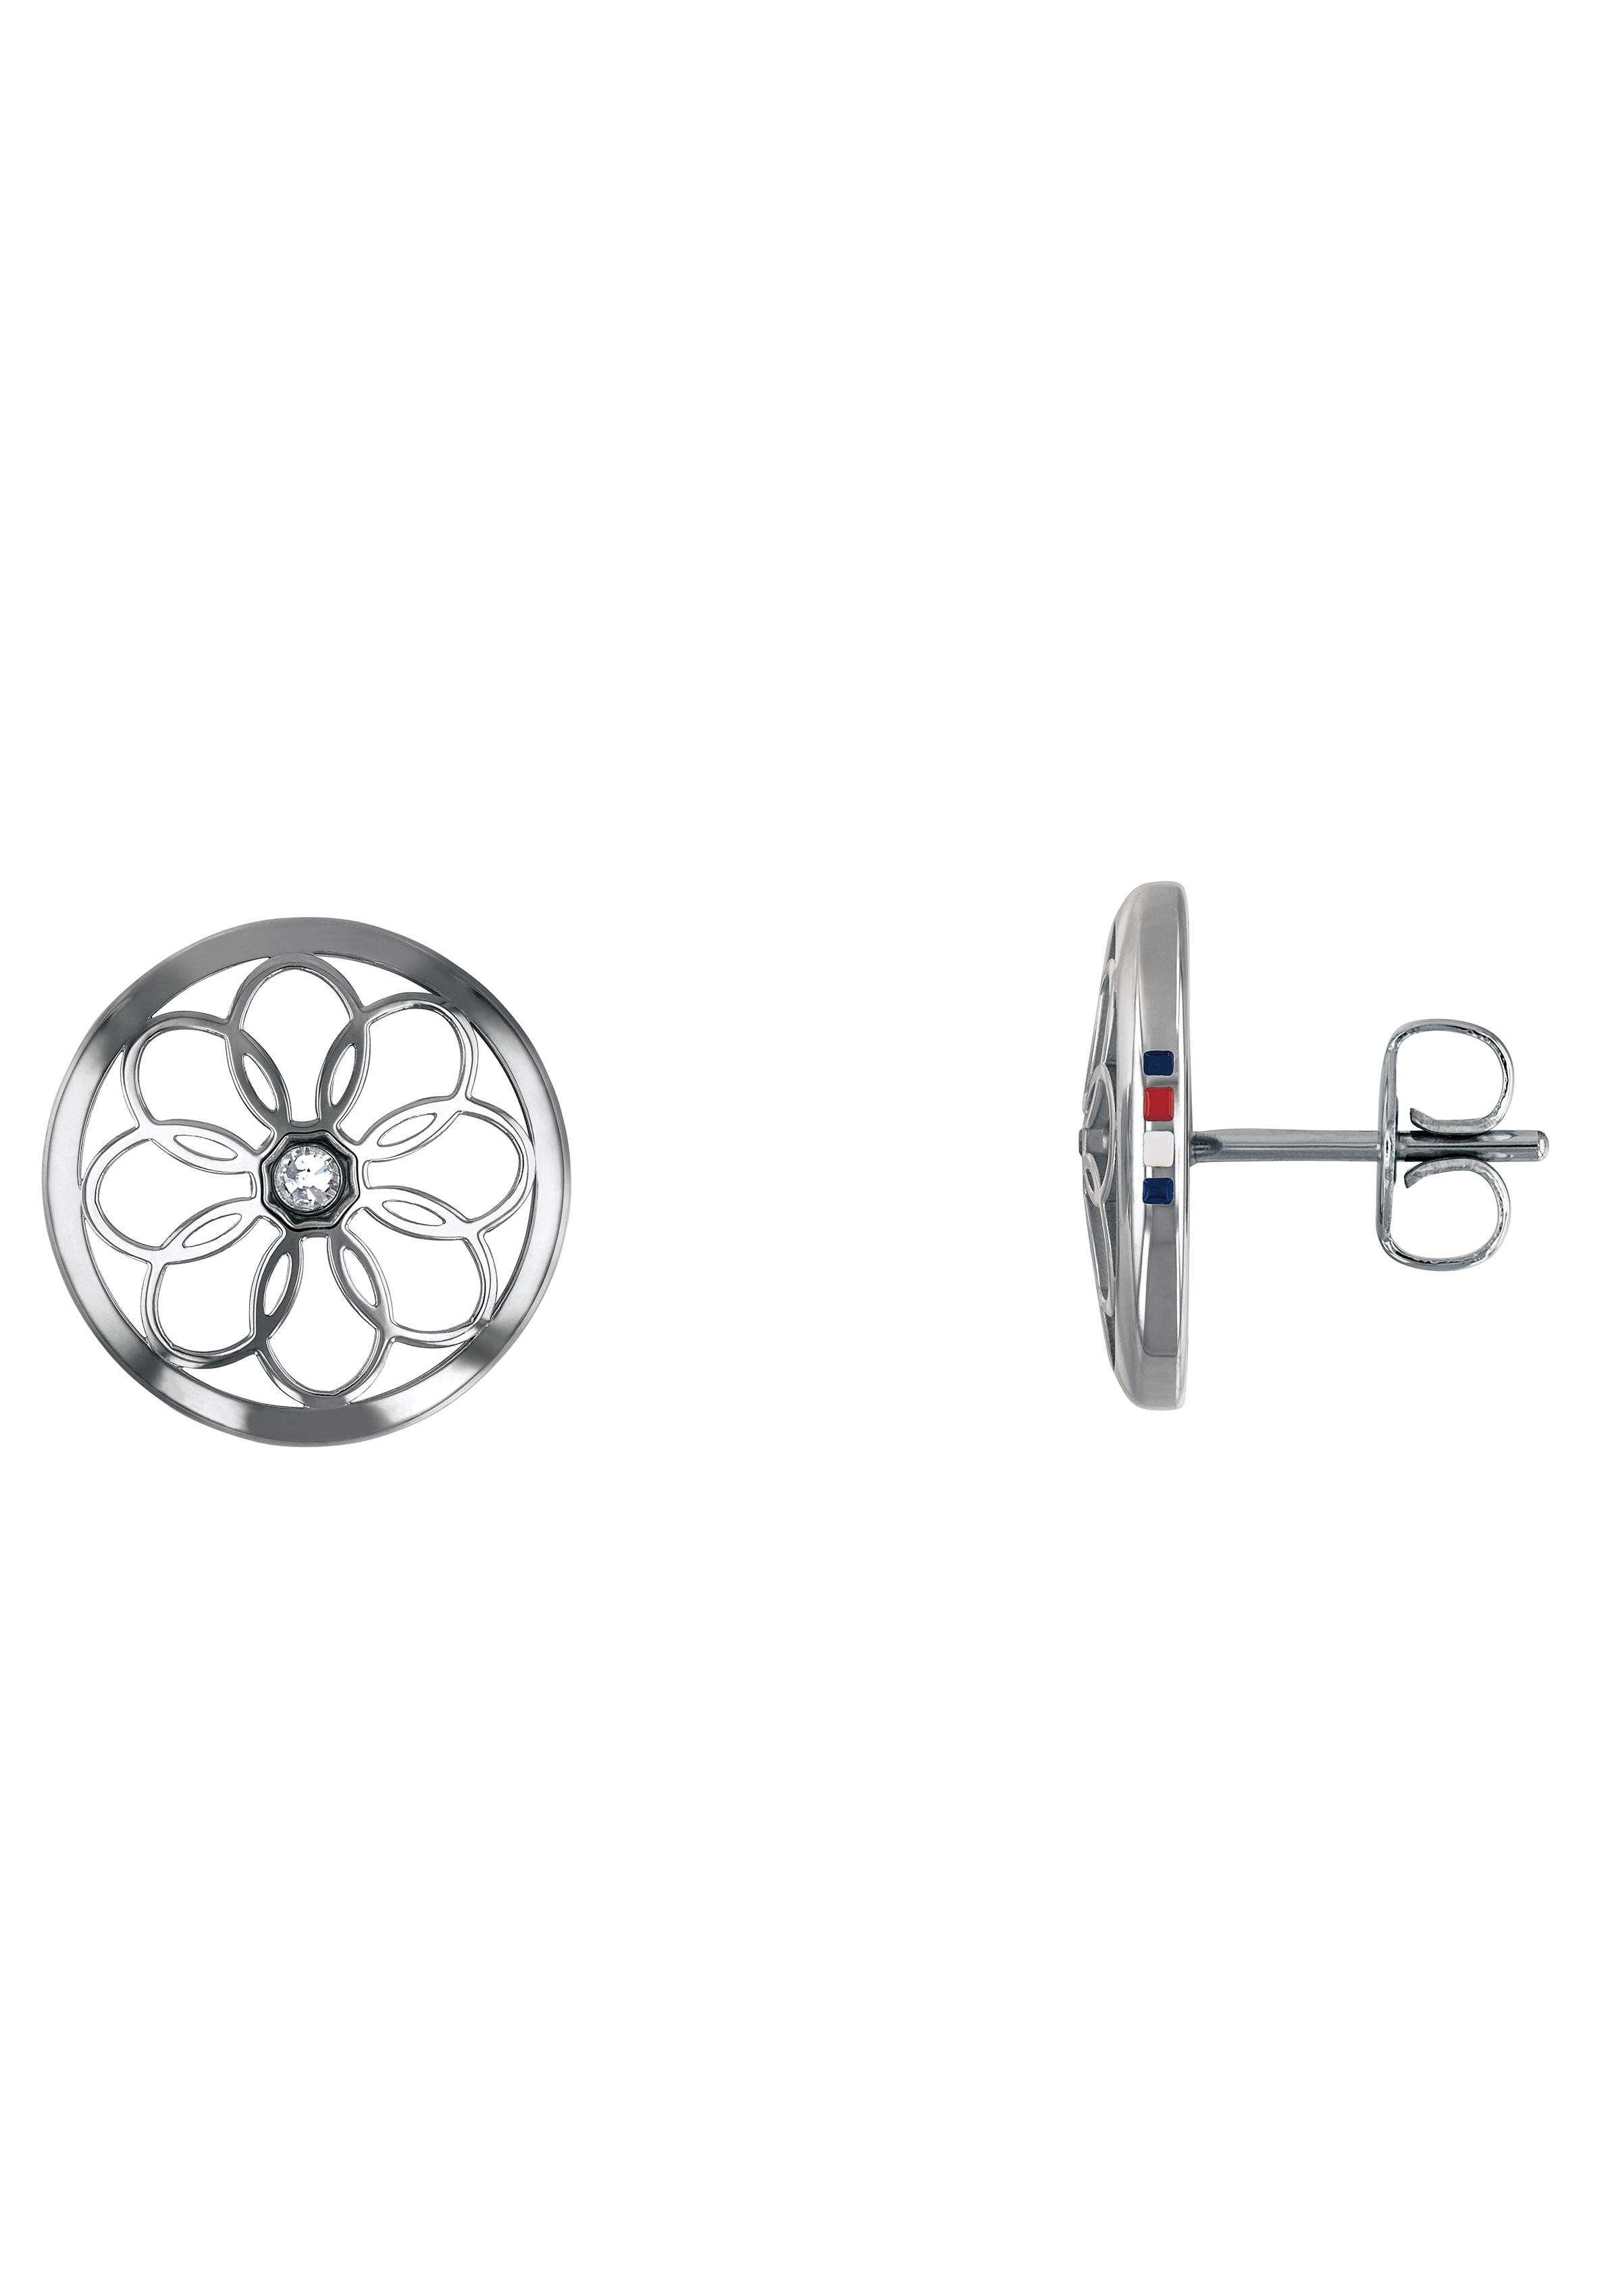 TOMMY HILFIGER Paar Ohrstecker CASUAL CORE 2780080 | Schmuck > Ohrschmuck & Ohrringe > Ohrstecker | Tommy Hilfiger